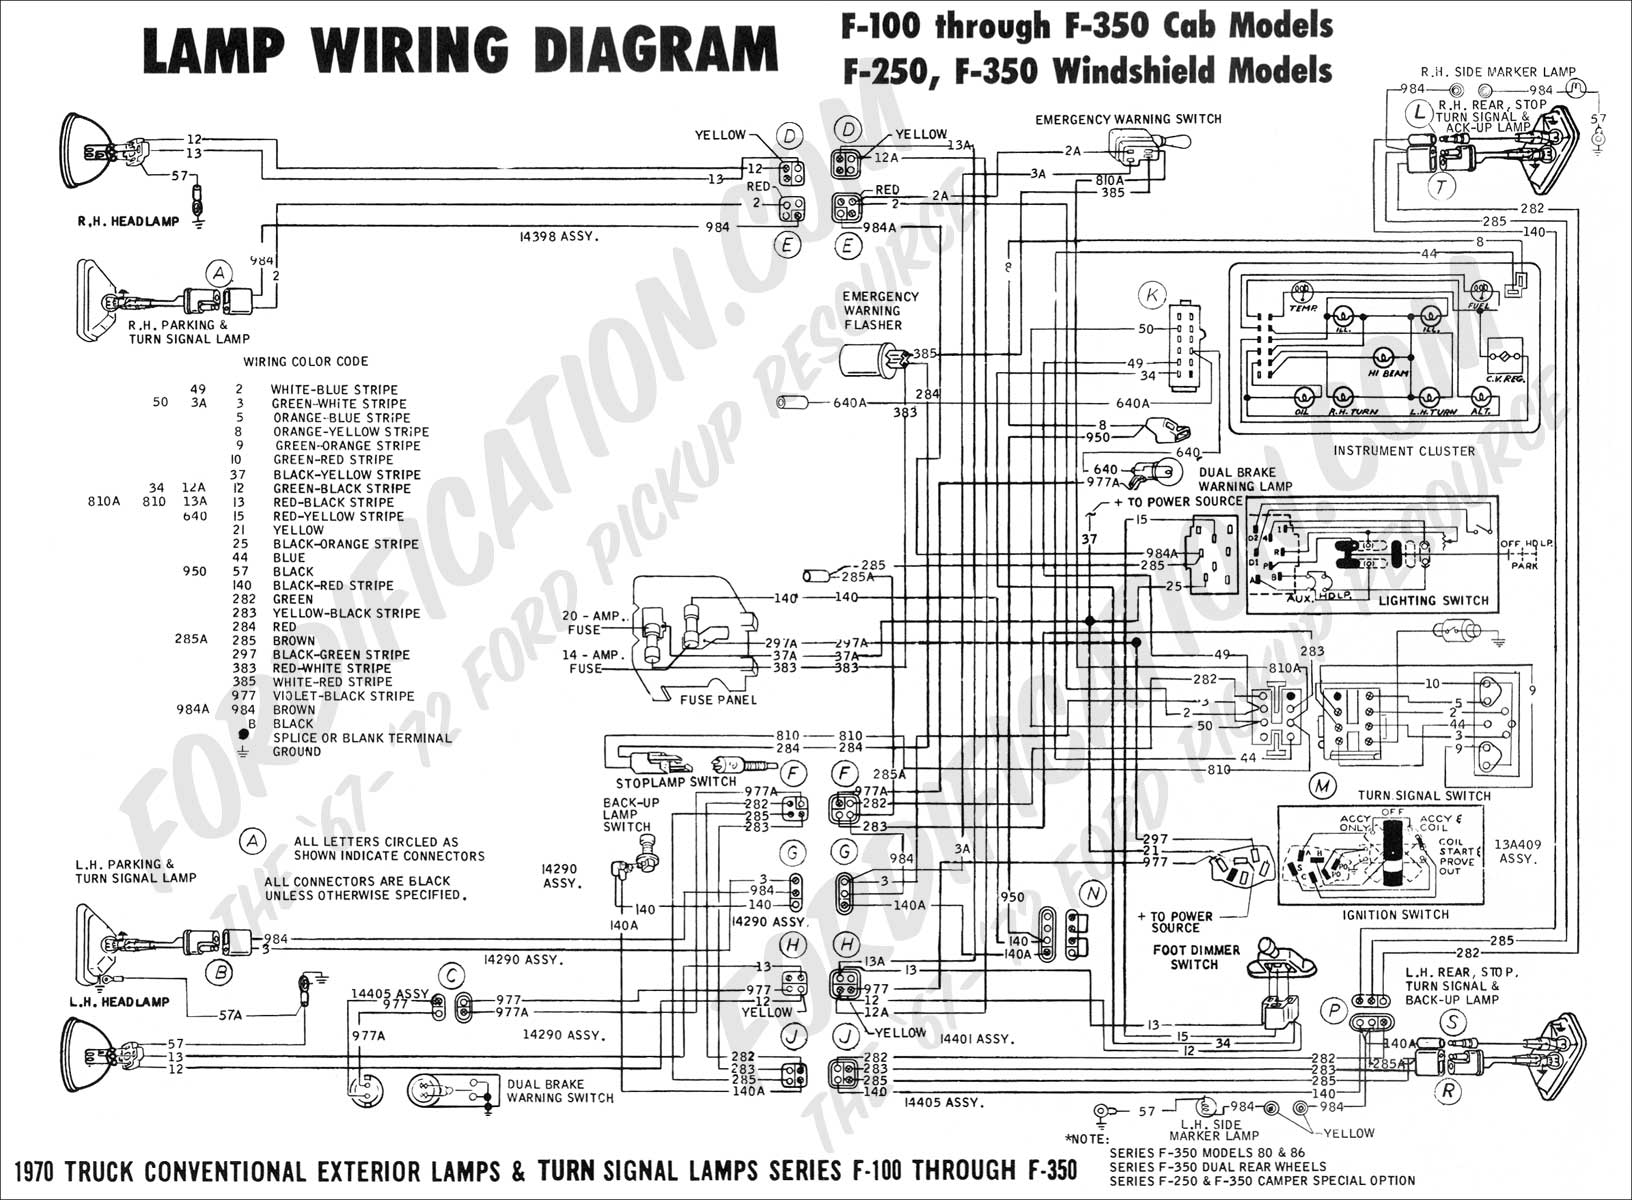 [DVZP_7254]   6CA7E 1999 Ford F350 Fuse Box Under | Wiring Library | Fuse Box For 1999 Ford F250 |  | Wiring Library